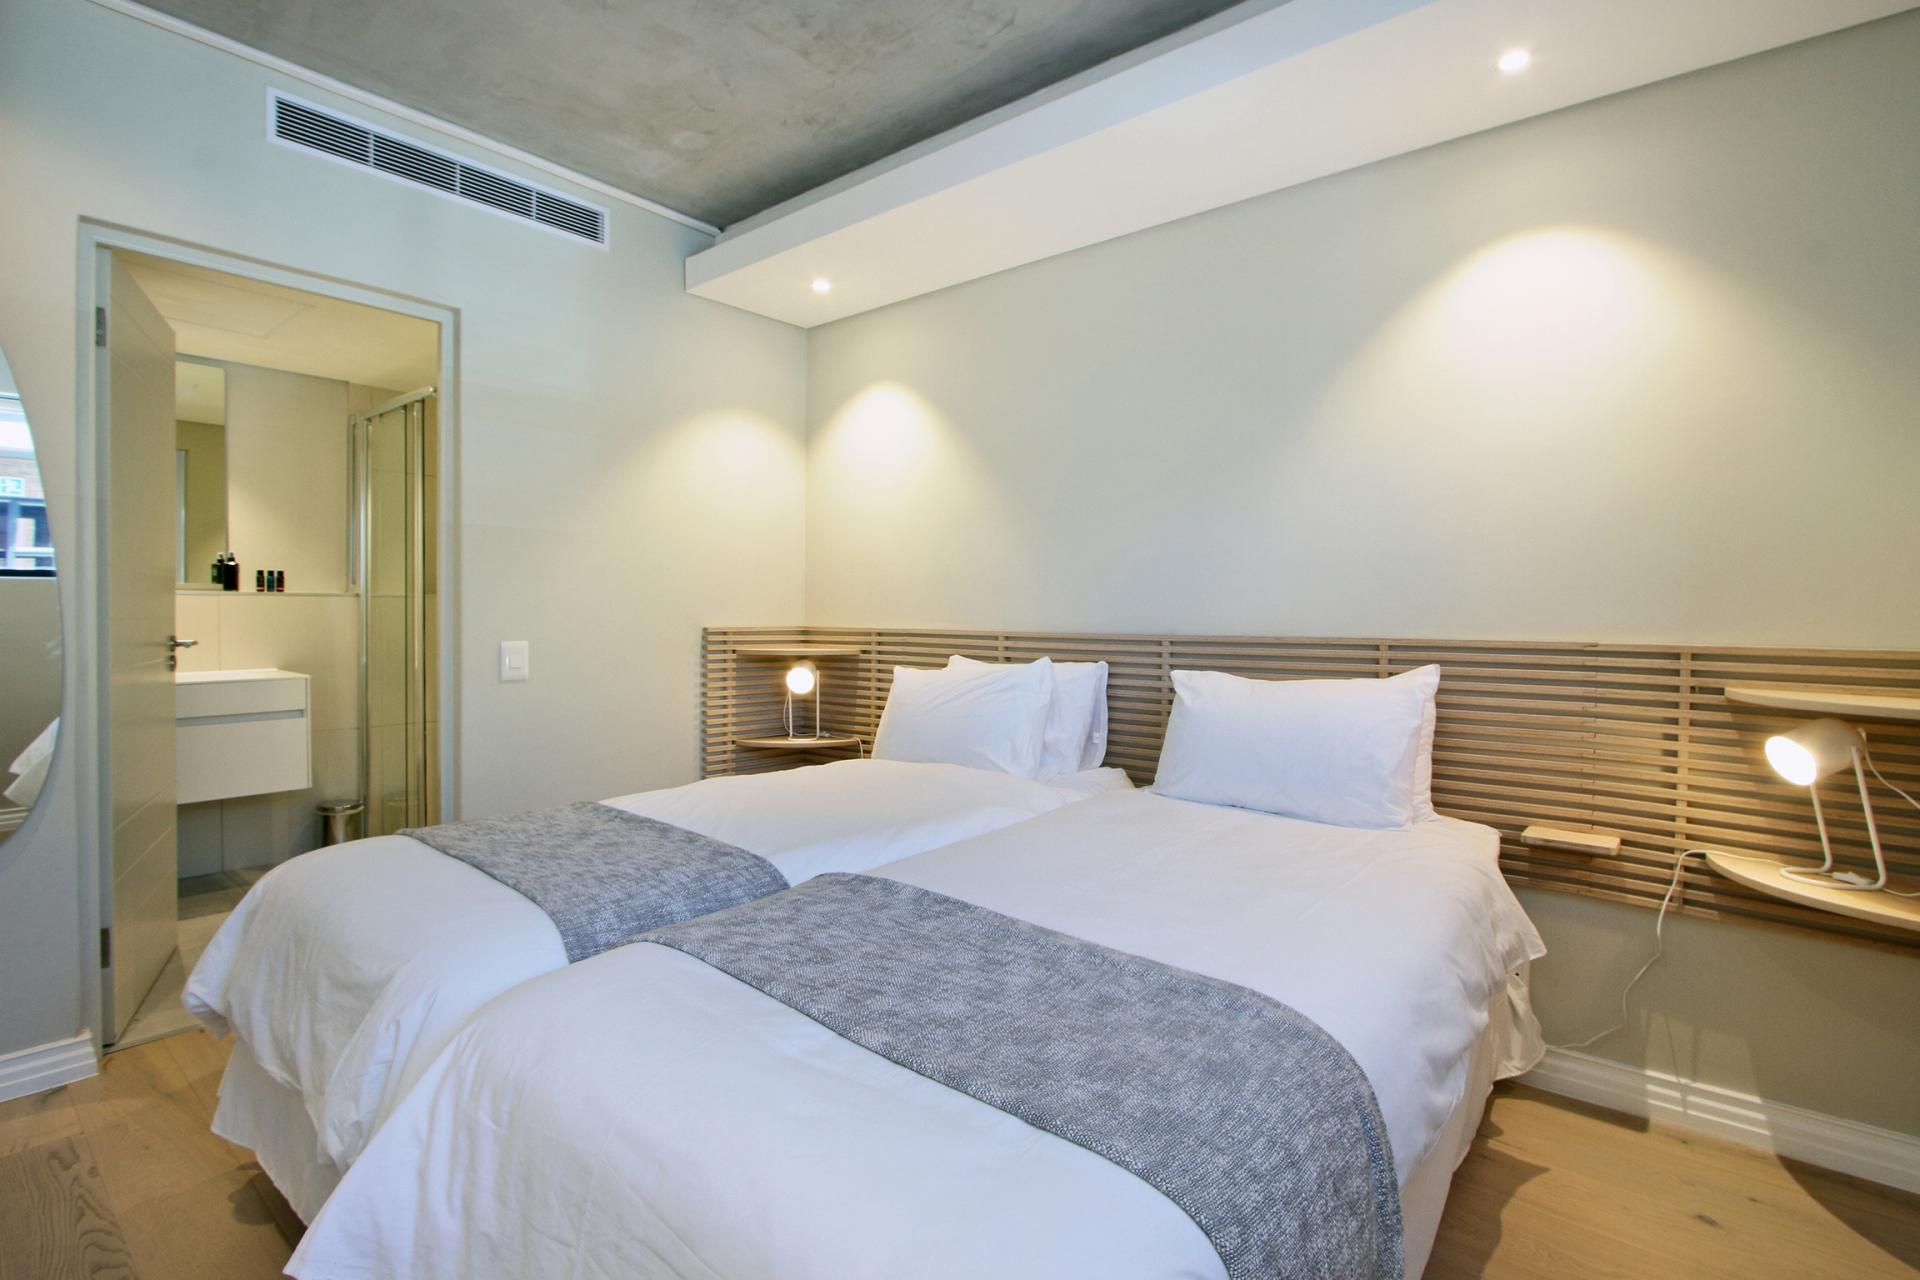 Twin beds at Docklands Cape Town Apartments, Green Point, Cape Town